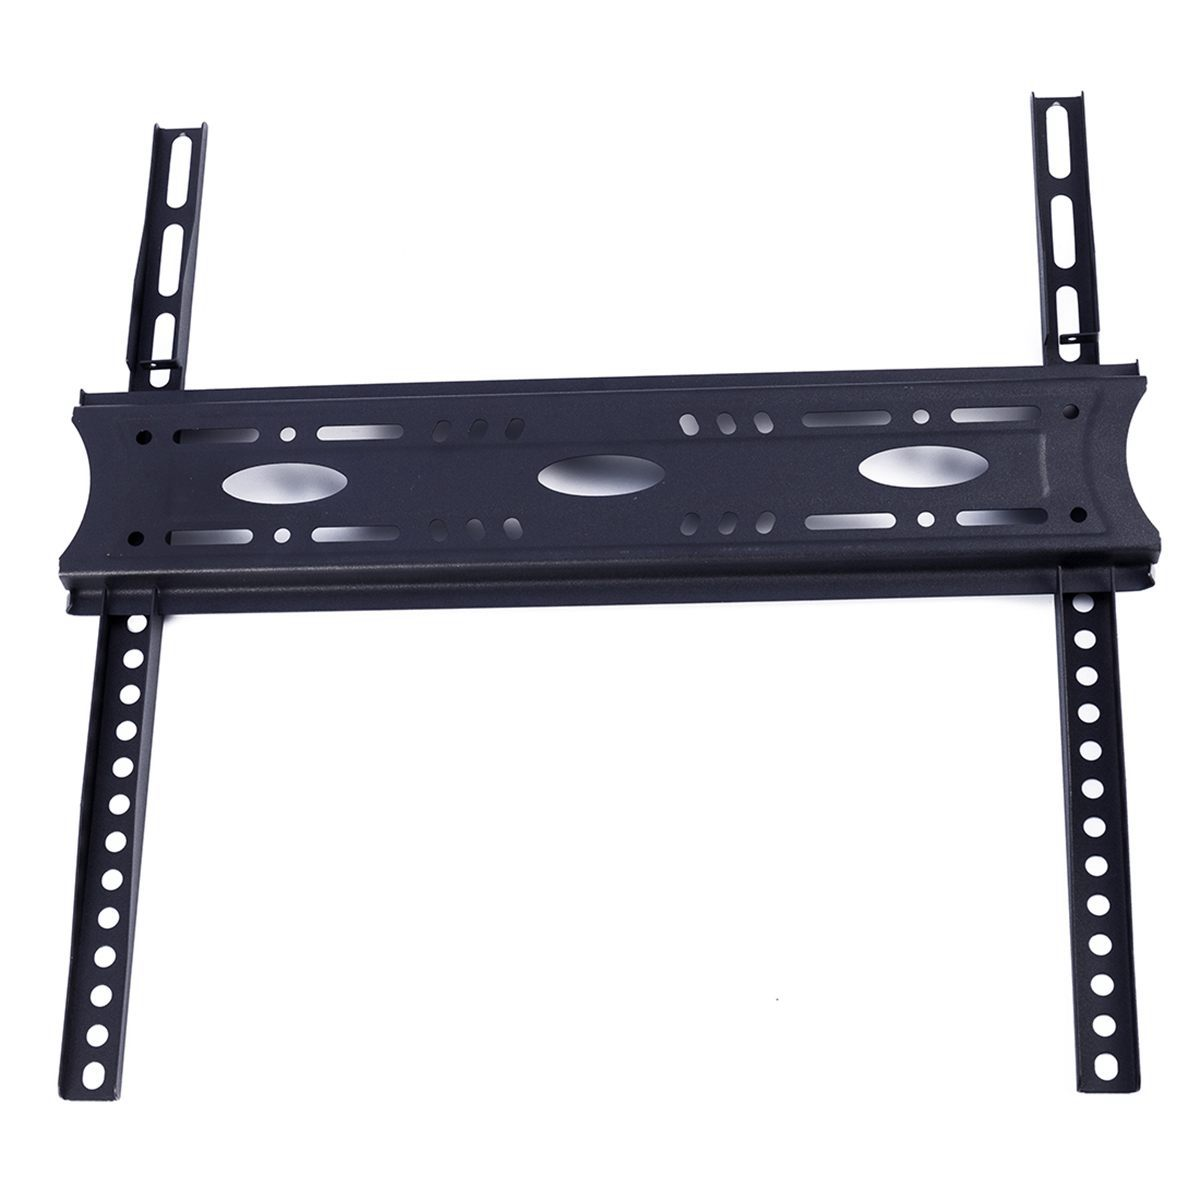 Smart Tilting TV Wall Mount Bracket for Most 30 - 60 Inch Up to 400x400 Mount of 14-42 Inch Vizio Sony LG Load 110lbs